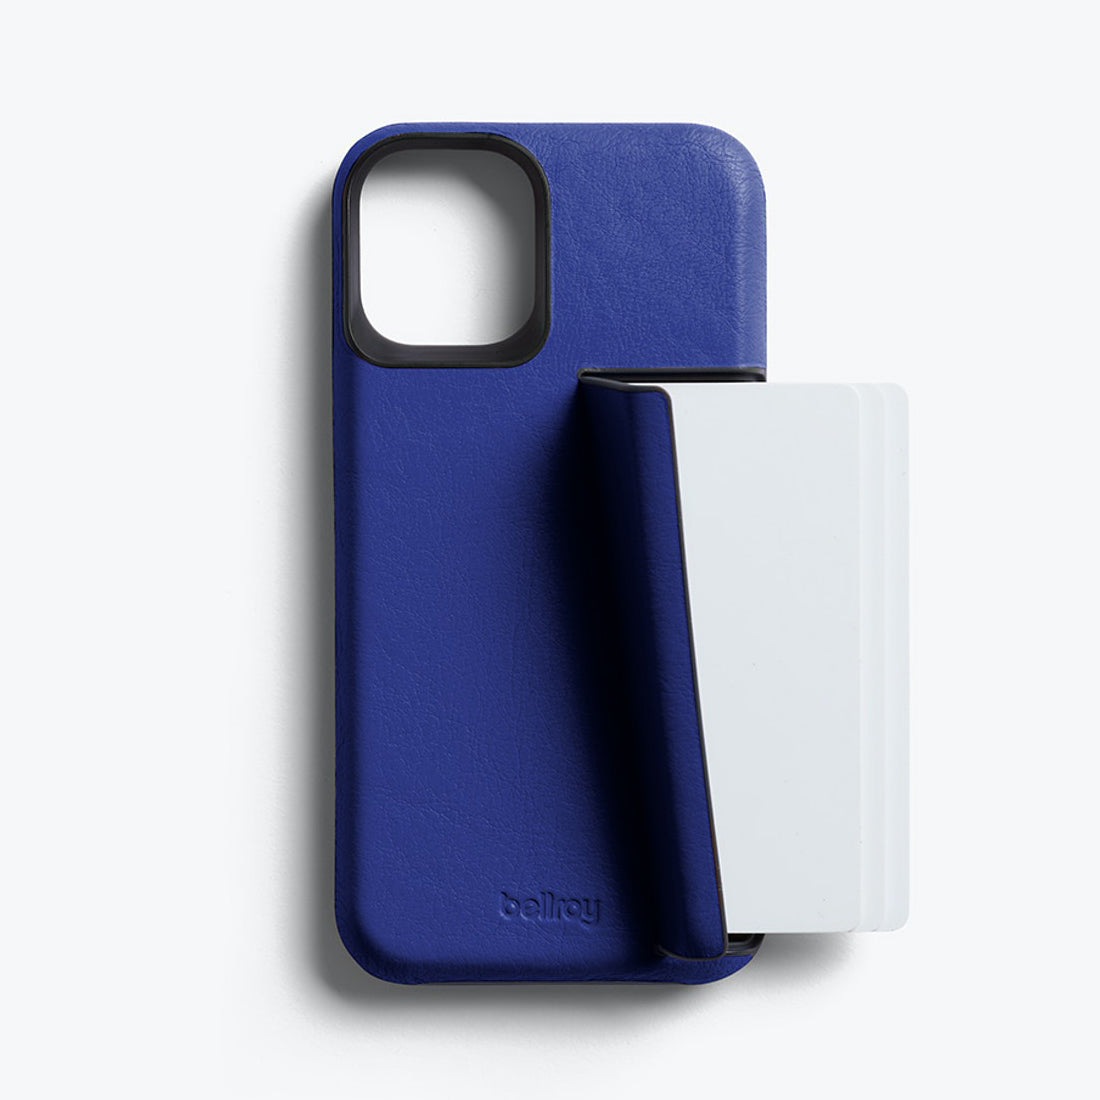 Bellroy 3-Card Genuine Leather Wallet Case For iPhone iPhone 12 mini - COBALT